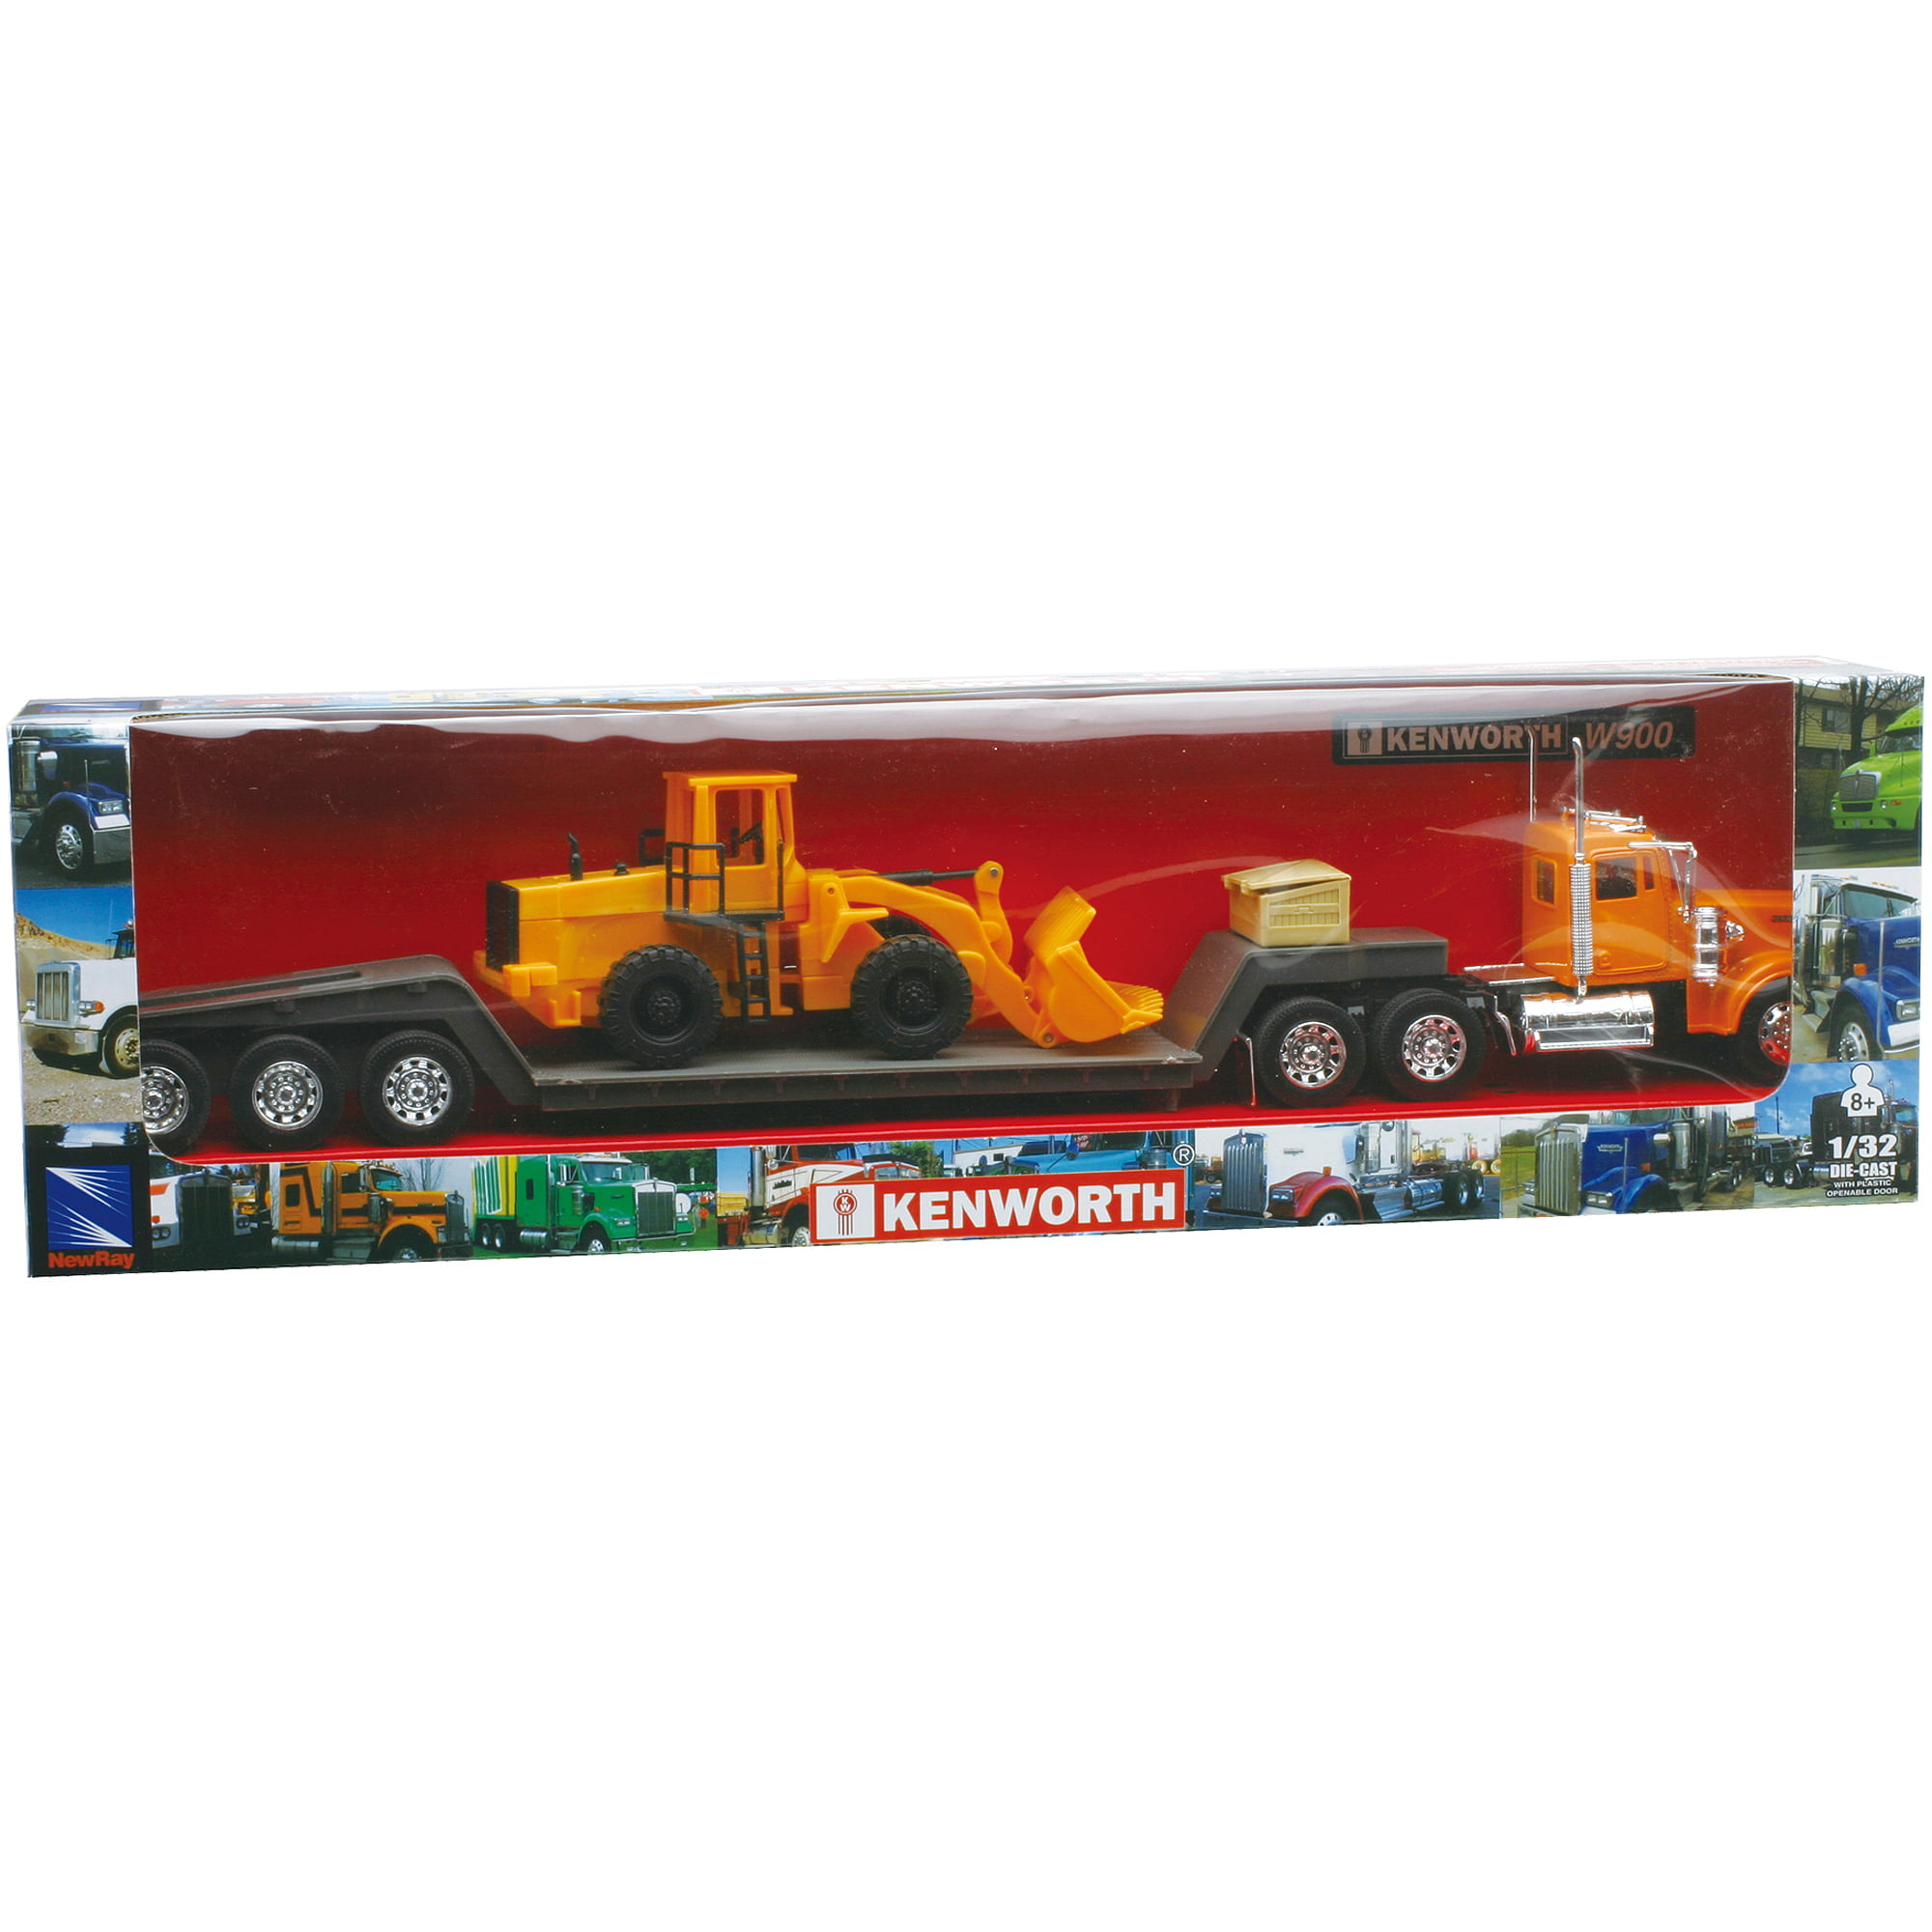 1:32 Scale Die-Cast Kenworth W900 Lowboy Tractor Trailer with Construction Tractor by New-ray Toys